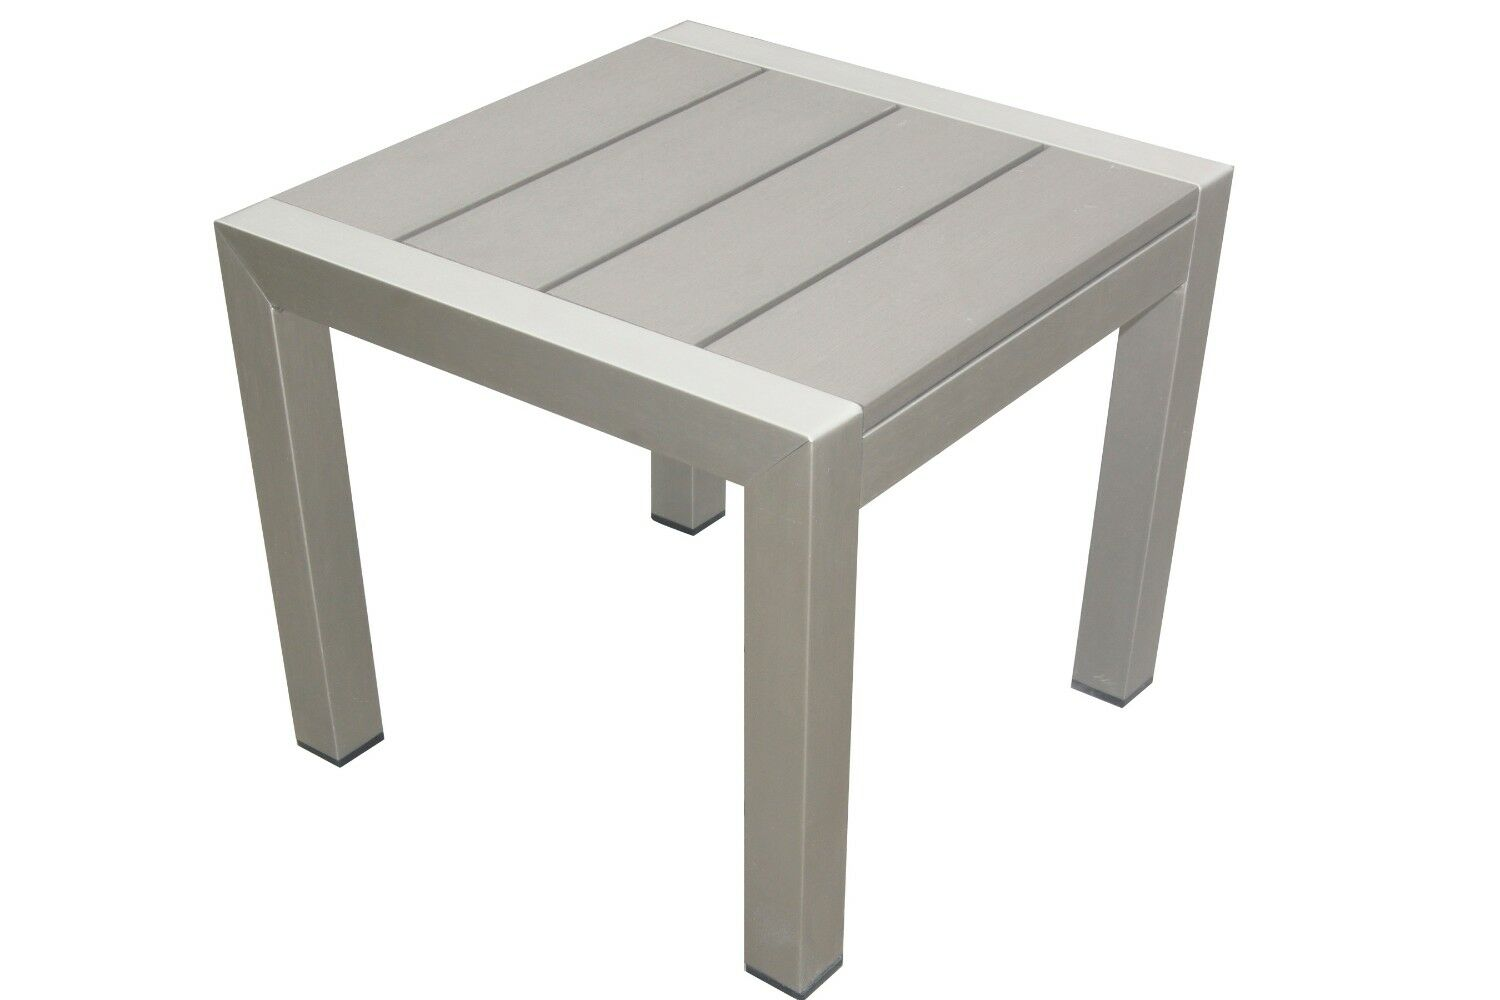 Lawler Highly Functional Easy Movable Outdoor Aluminum Side Table Color: Gray